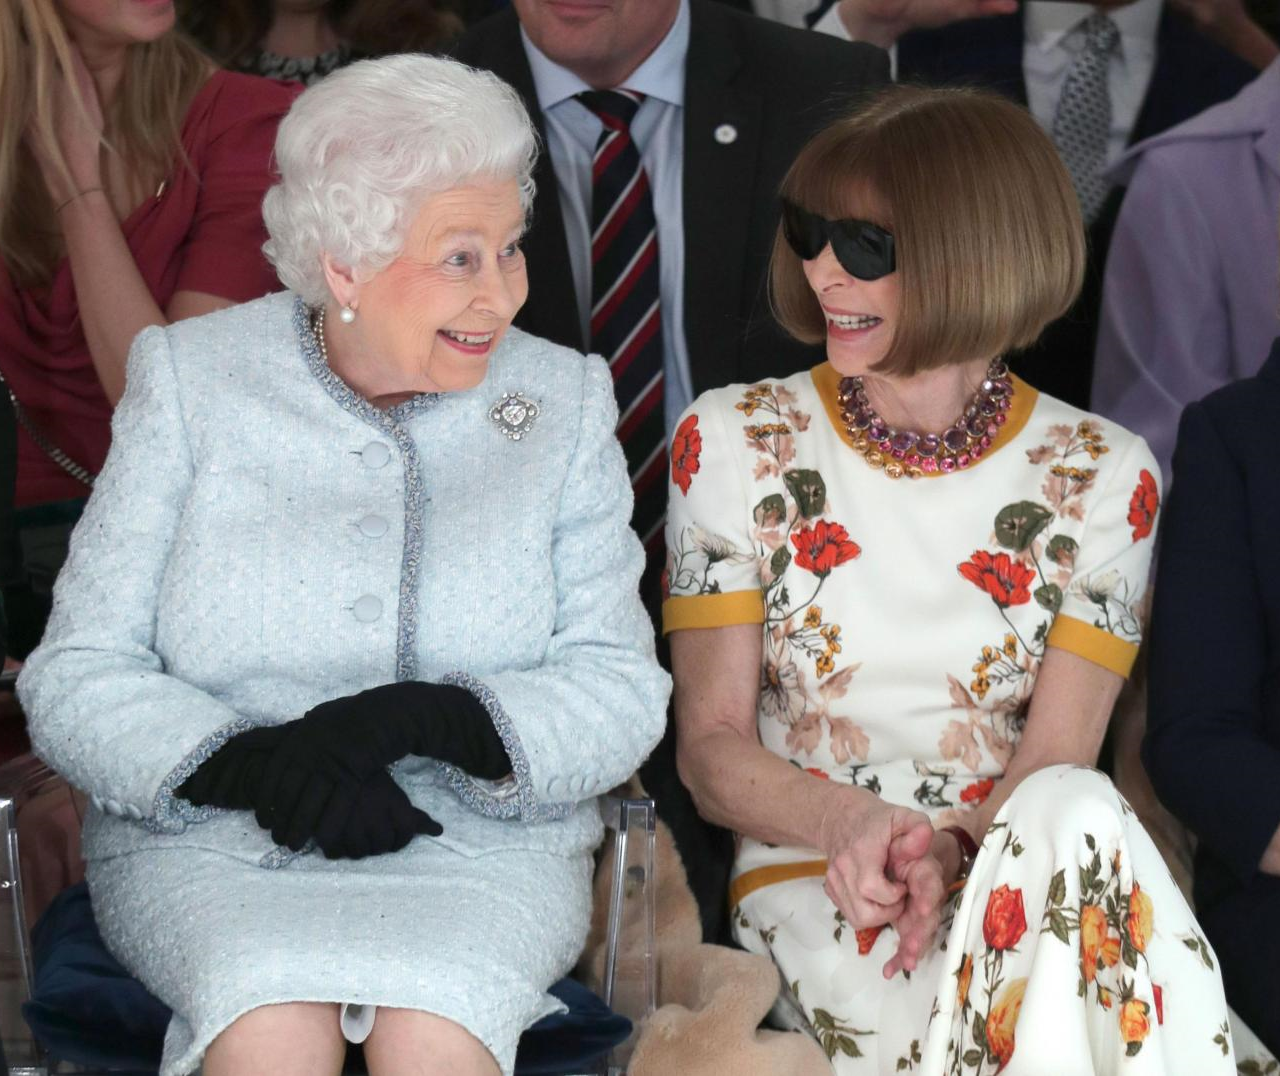 Her Majesty the Queen Attends London Fashion Week